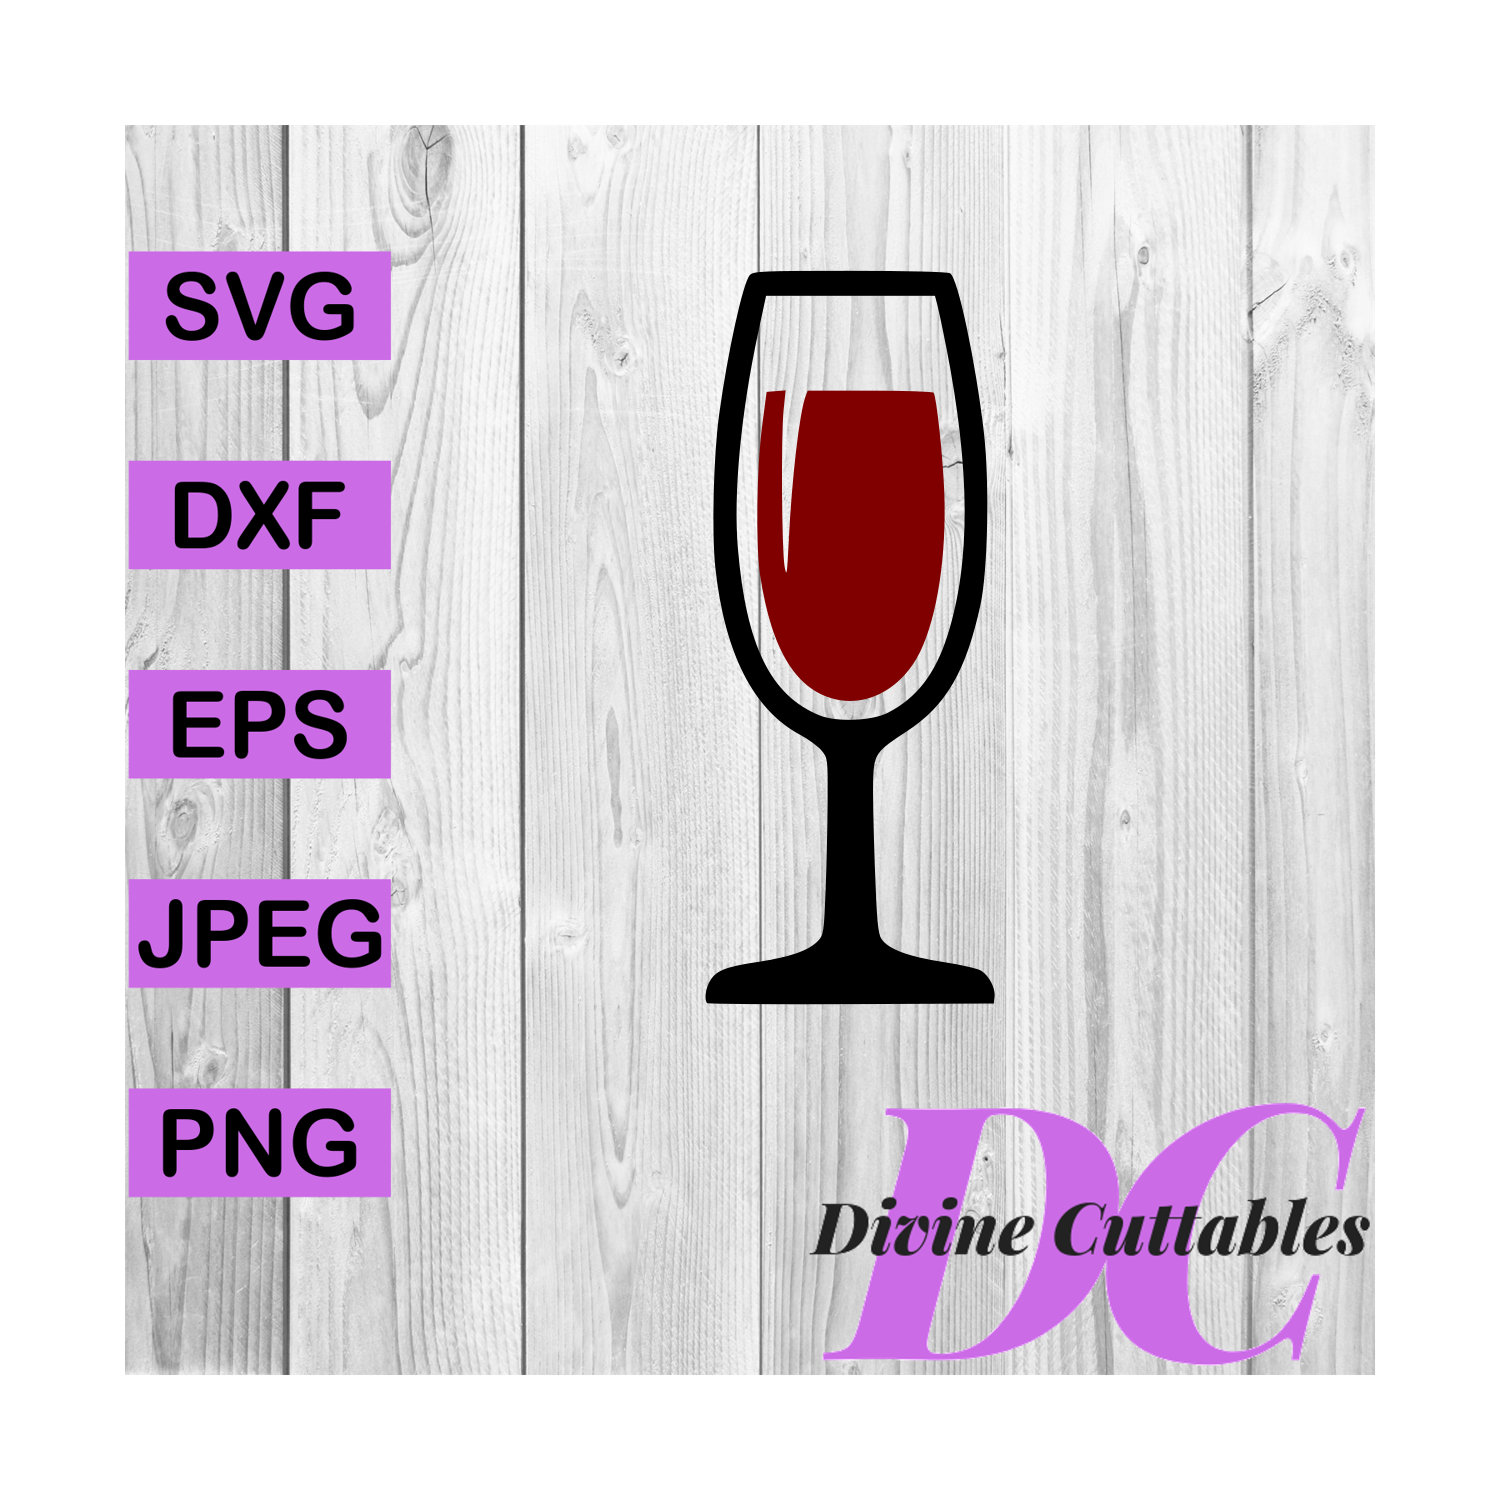 photo regarding Free Printable Wine Glass Stencils named Order 3 Attain 1 No cost..Gl Crimson White Wine Gl Silhouette Clipart Electronic Reduce Document Style and design Decal Stencil Template Vector Svg,Dxf,Png,Eps